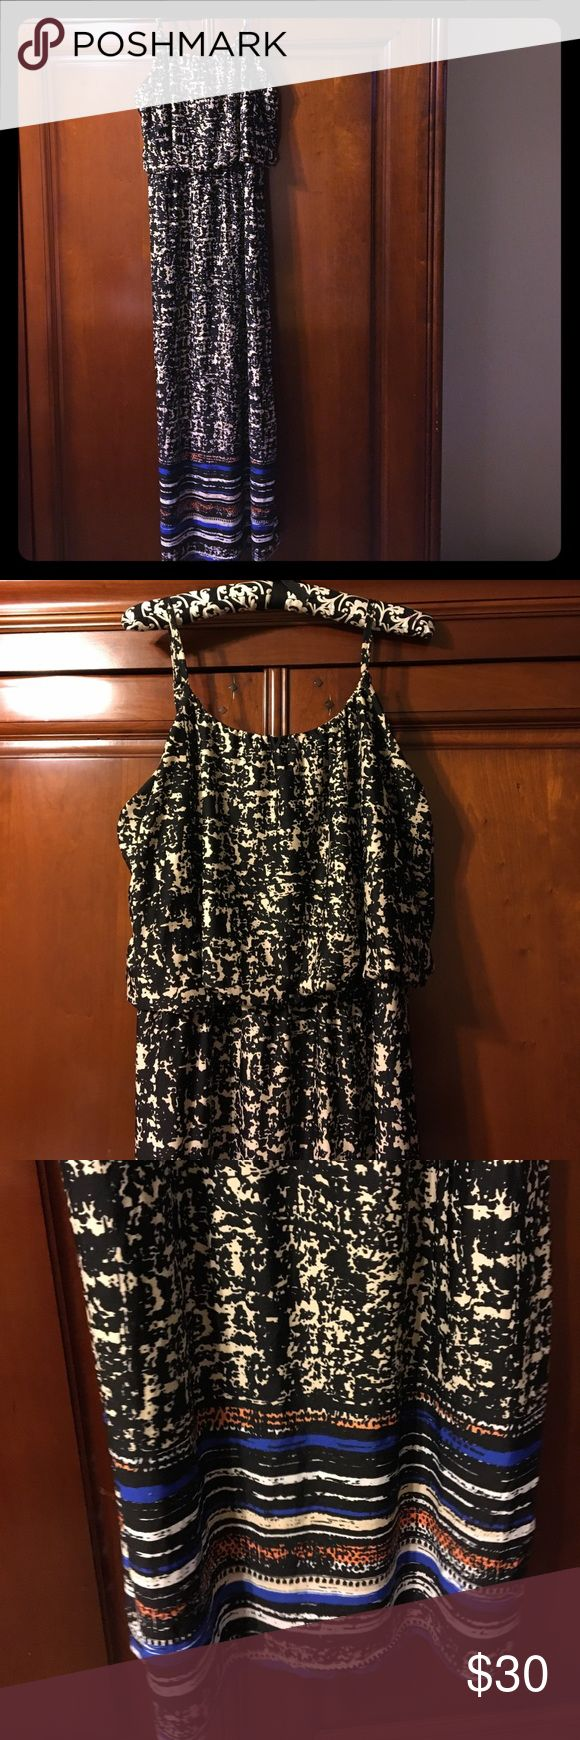 Pretty Maxi dress black & white w/ blue & orange So pretty. Can wear this dress casual or dress up with nice shoes and jewelry;) empire waist, scoop neck with adjustable spaghetti straps. Has pops of orange and blue on the bottom of dress. majic Dresses